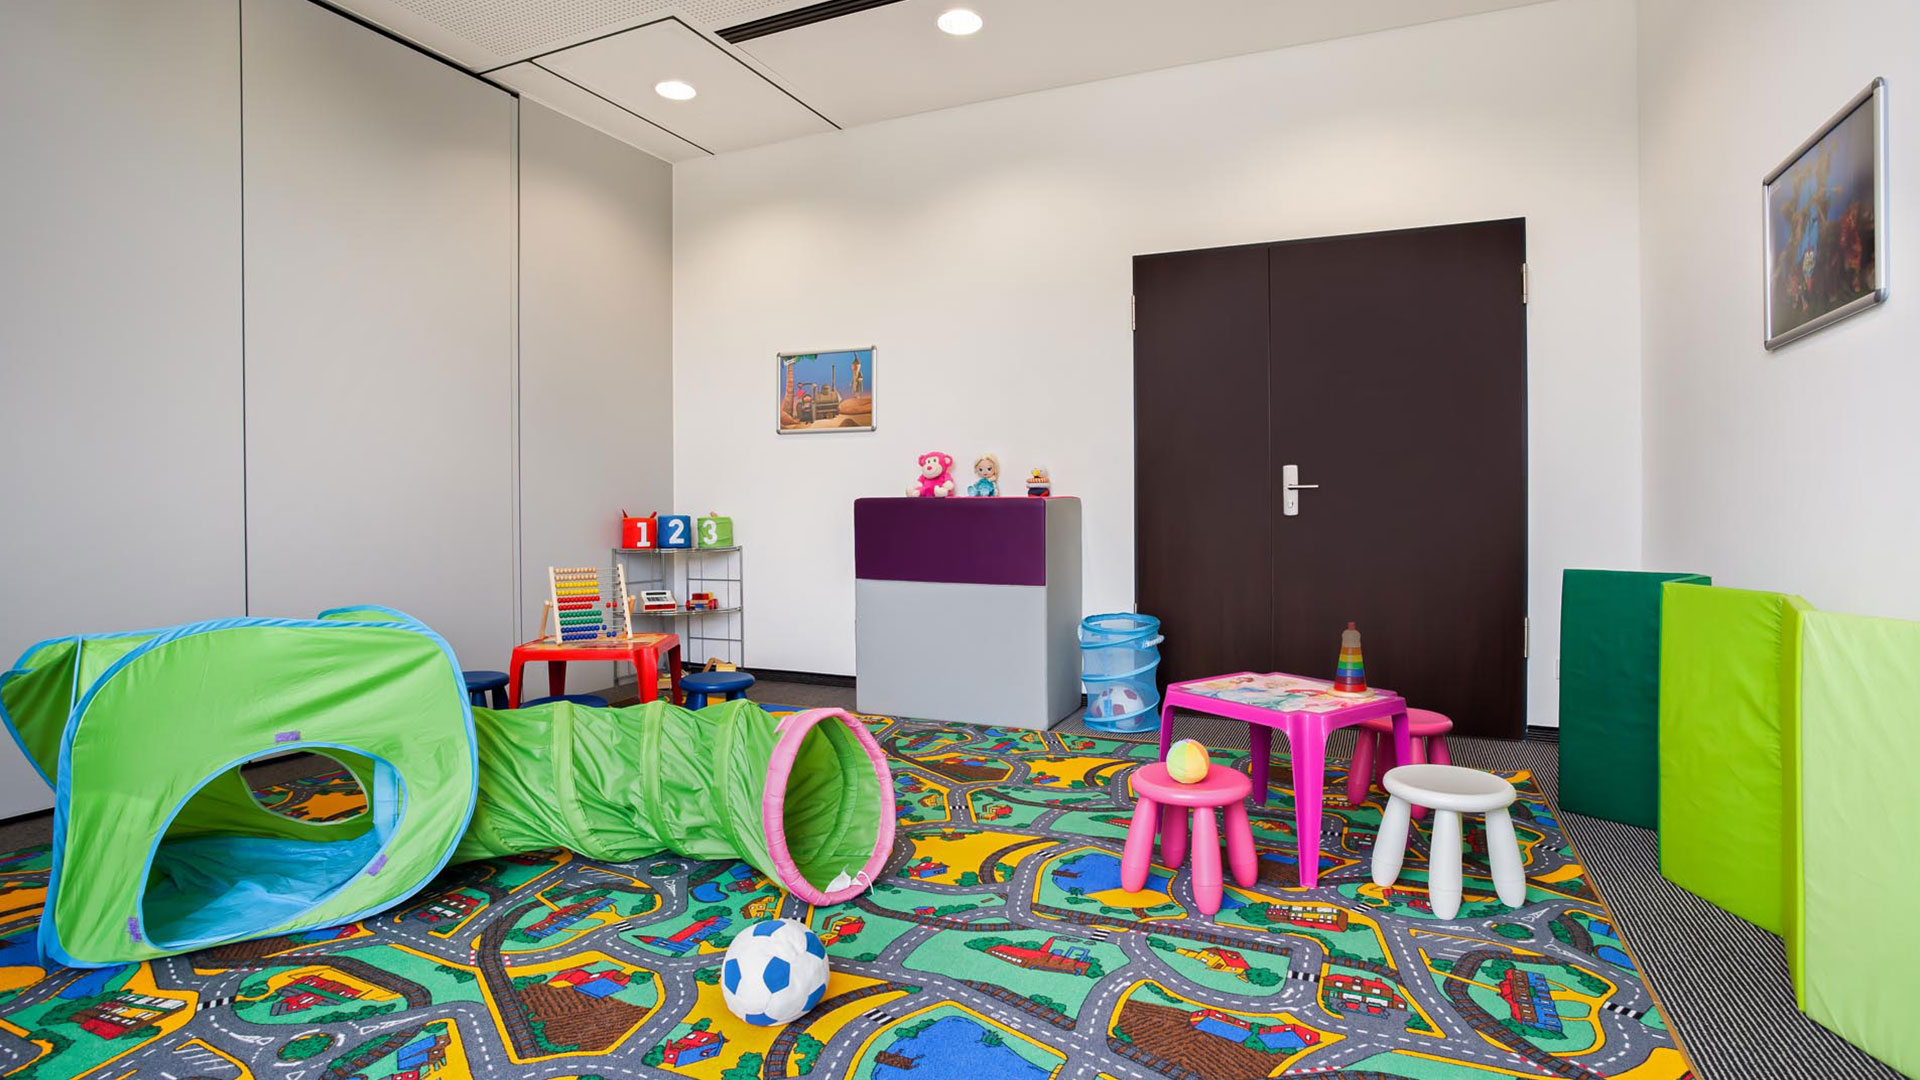 Photo of the playroom of the Holiday Inn Express Augsburg